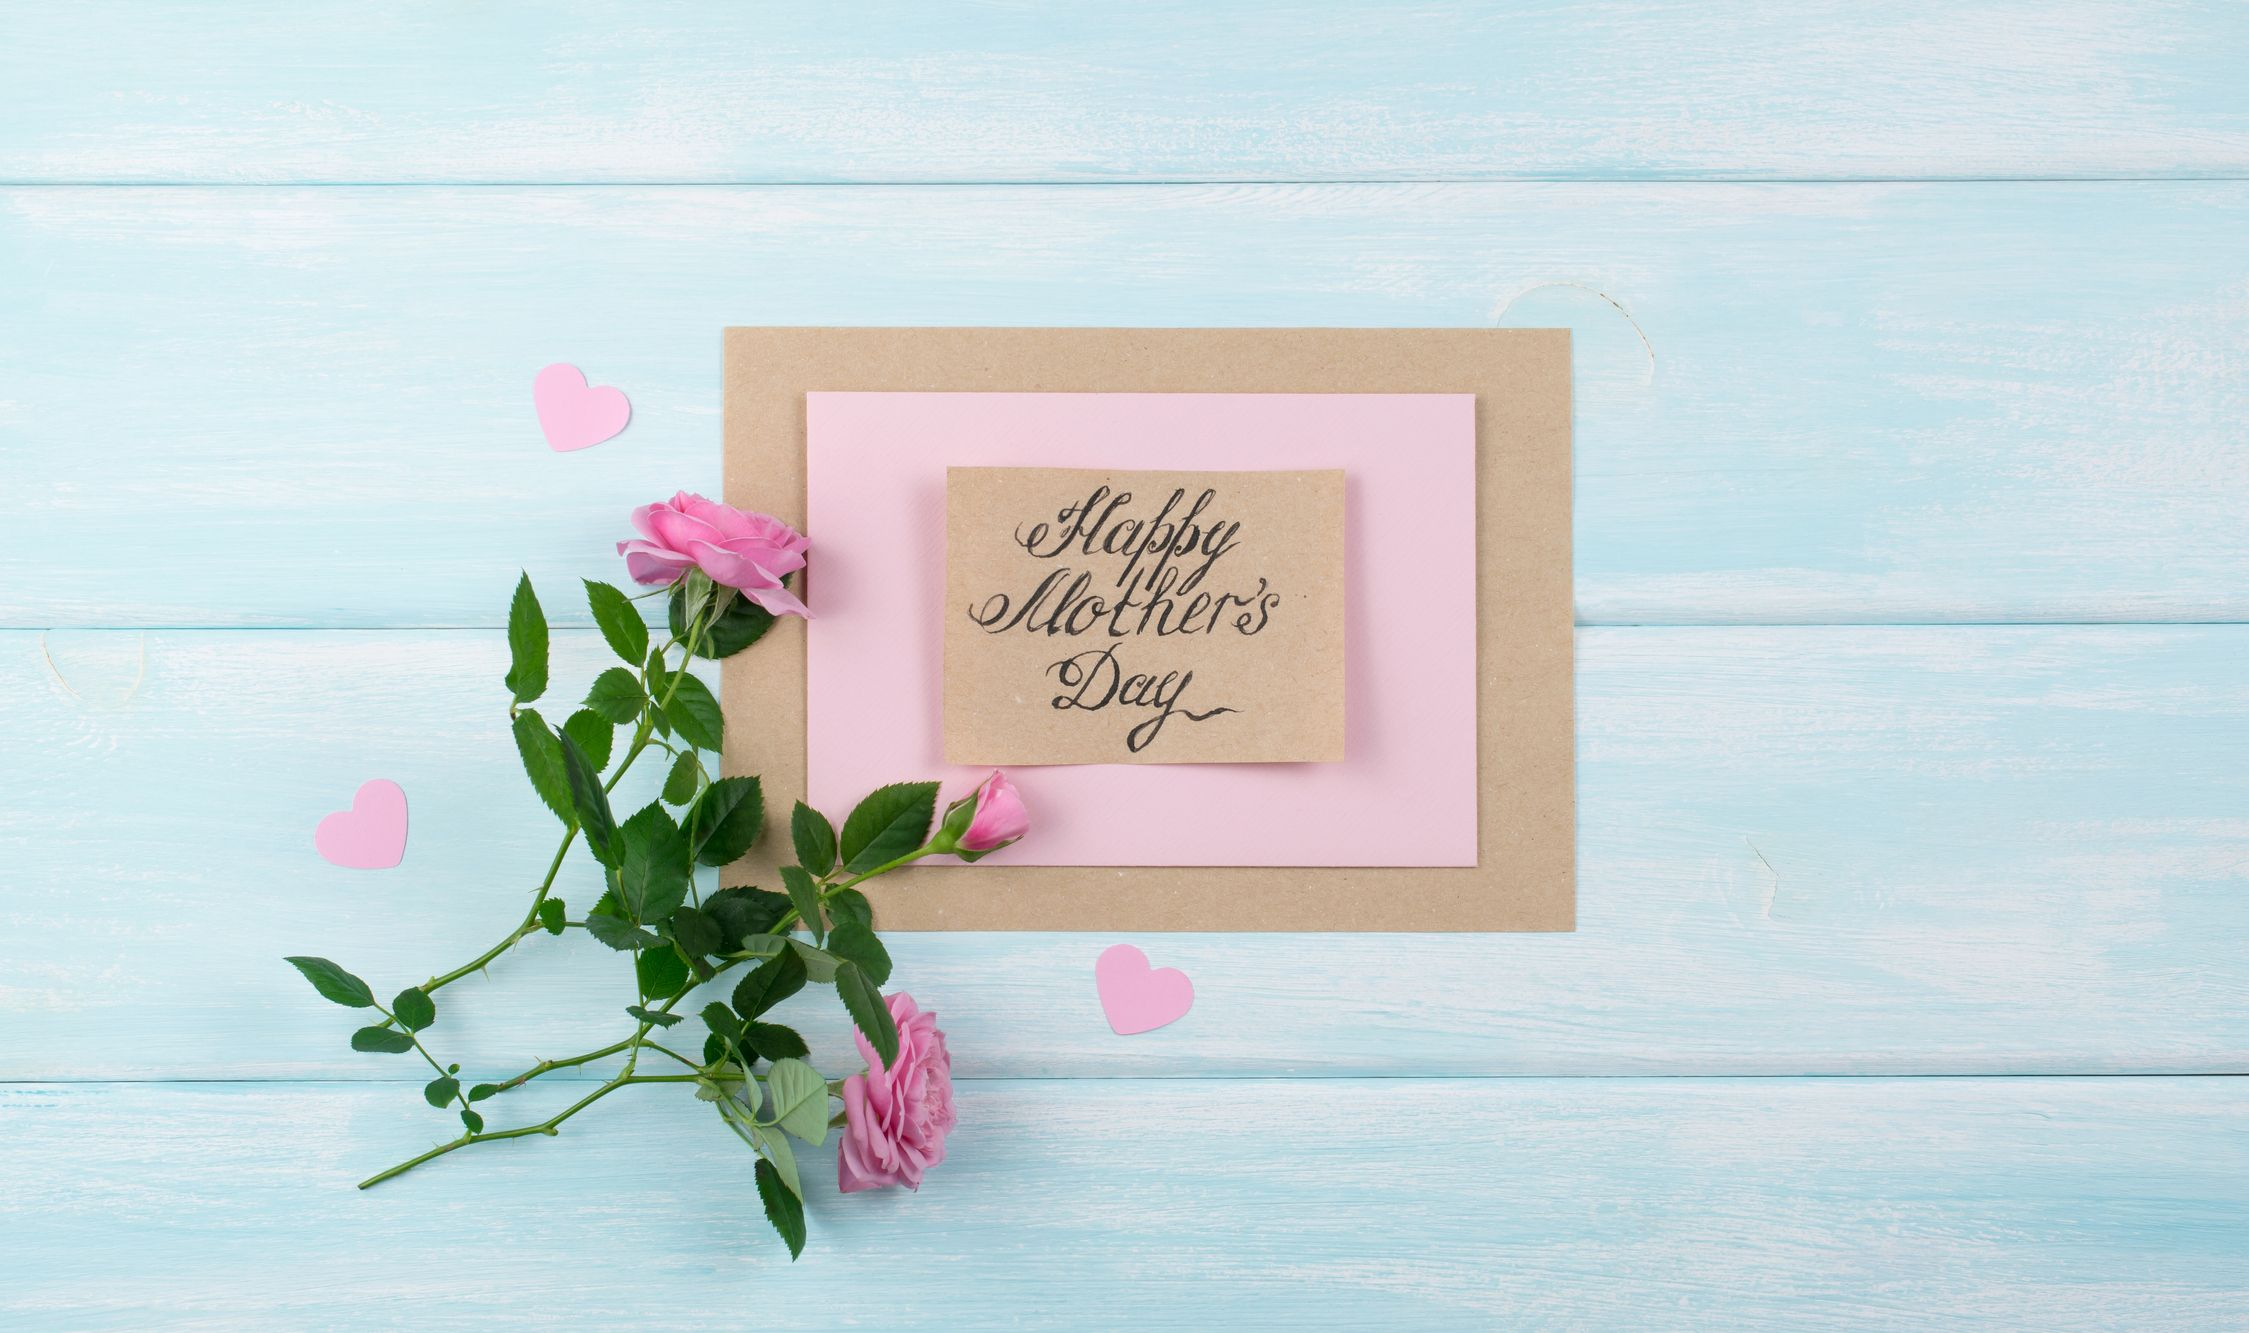 image relating to Printable Mothers Day Cards for Wife named 30 Lovely Cost-free Printable Moms Working day Playing cards - Mother Playing cards Oneself Can